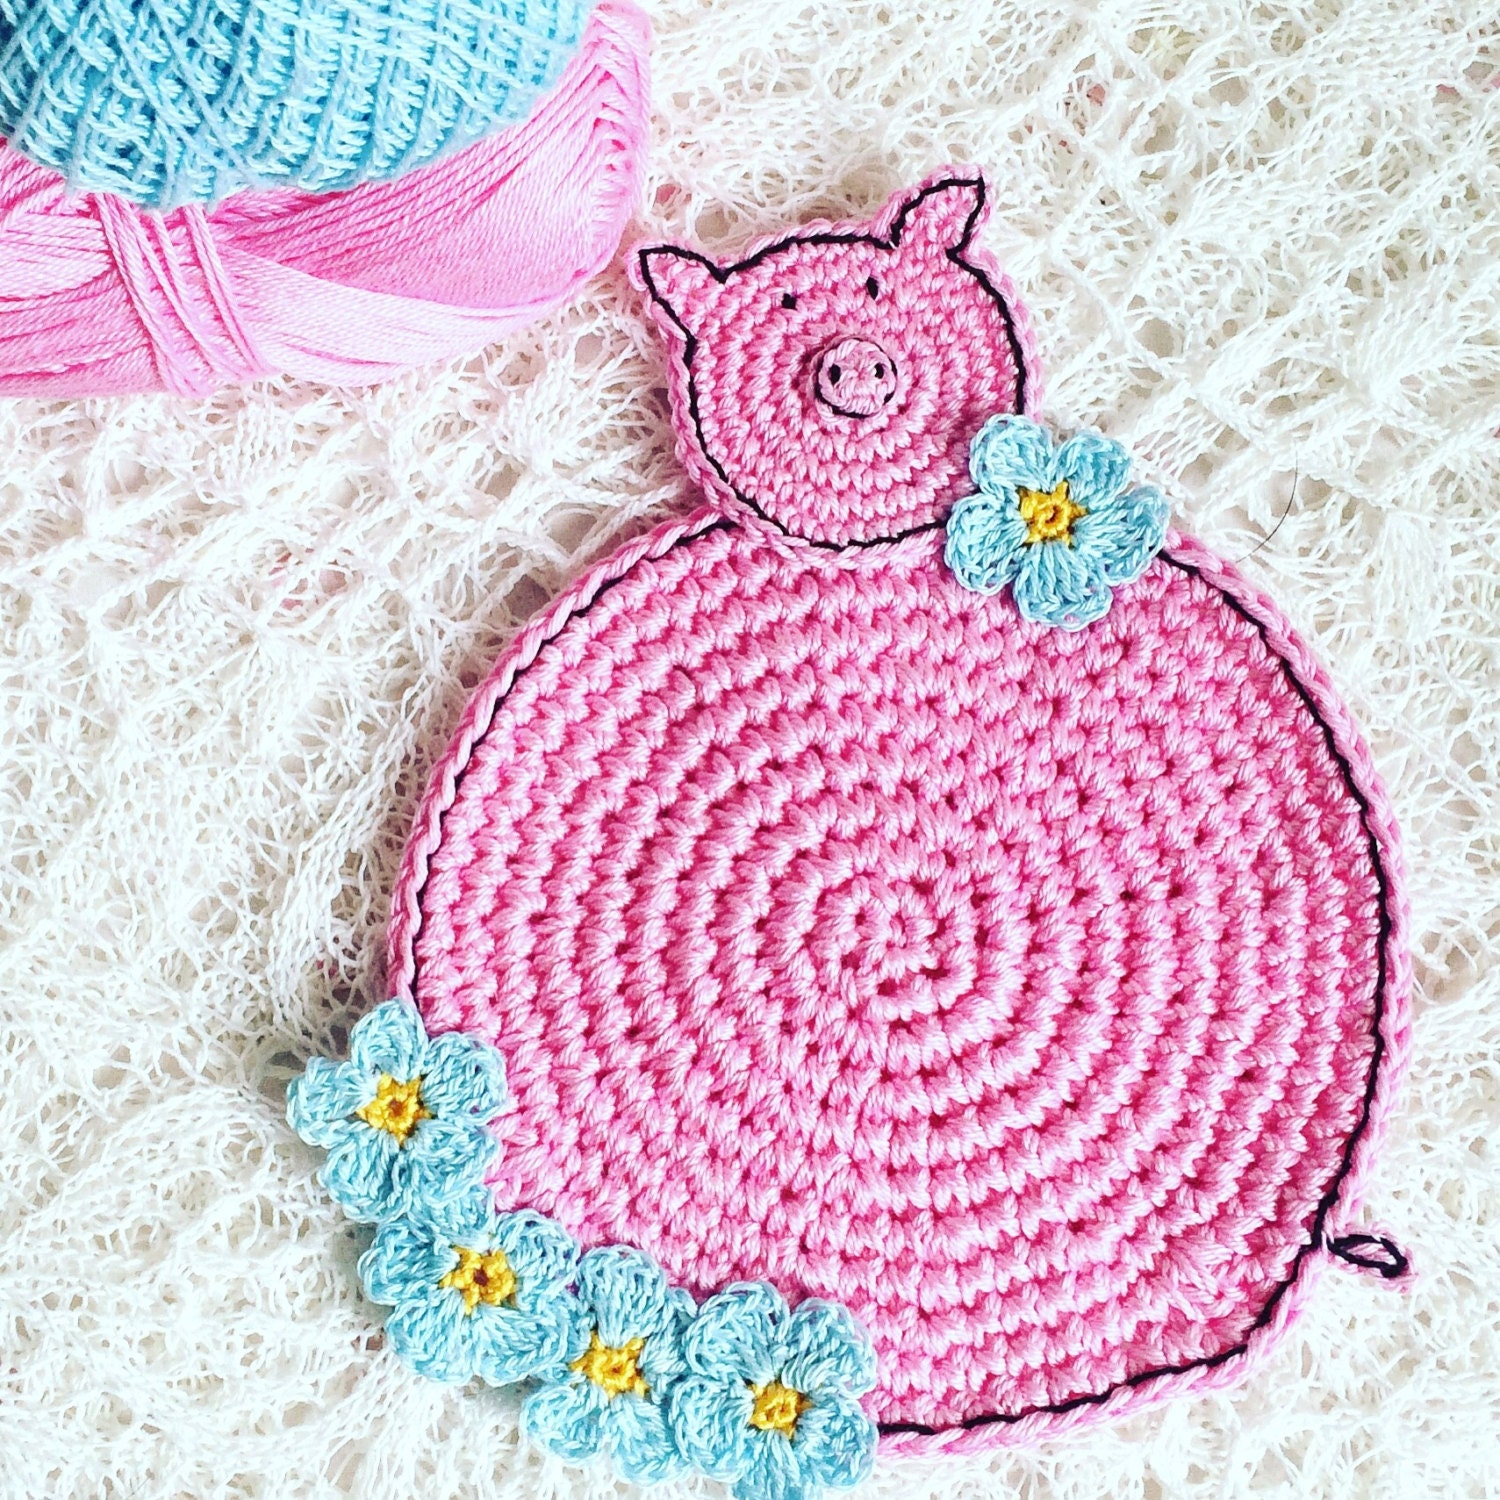 Crochet Coasters Pig Coasters Farmhouse Kitchen Decor